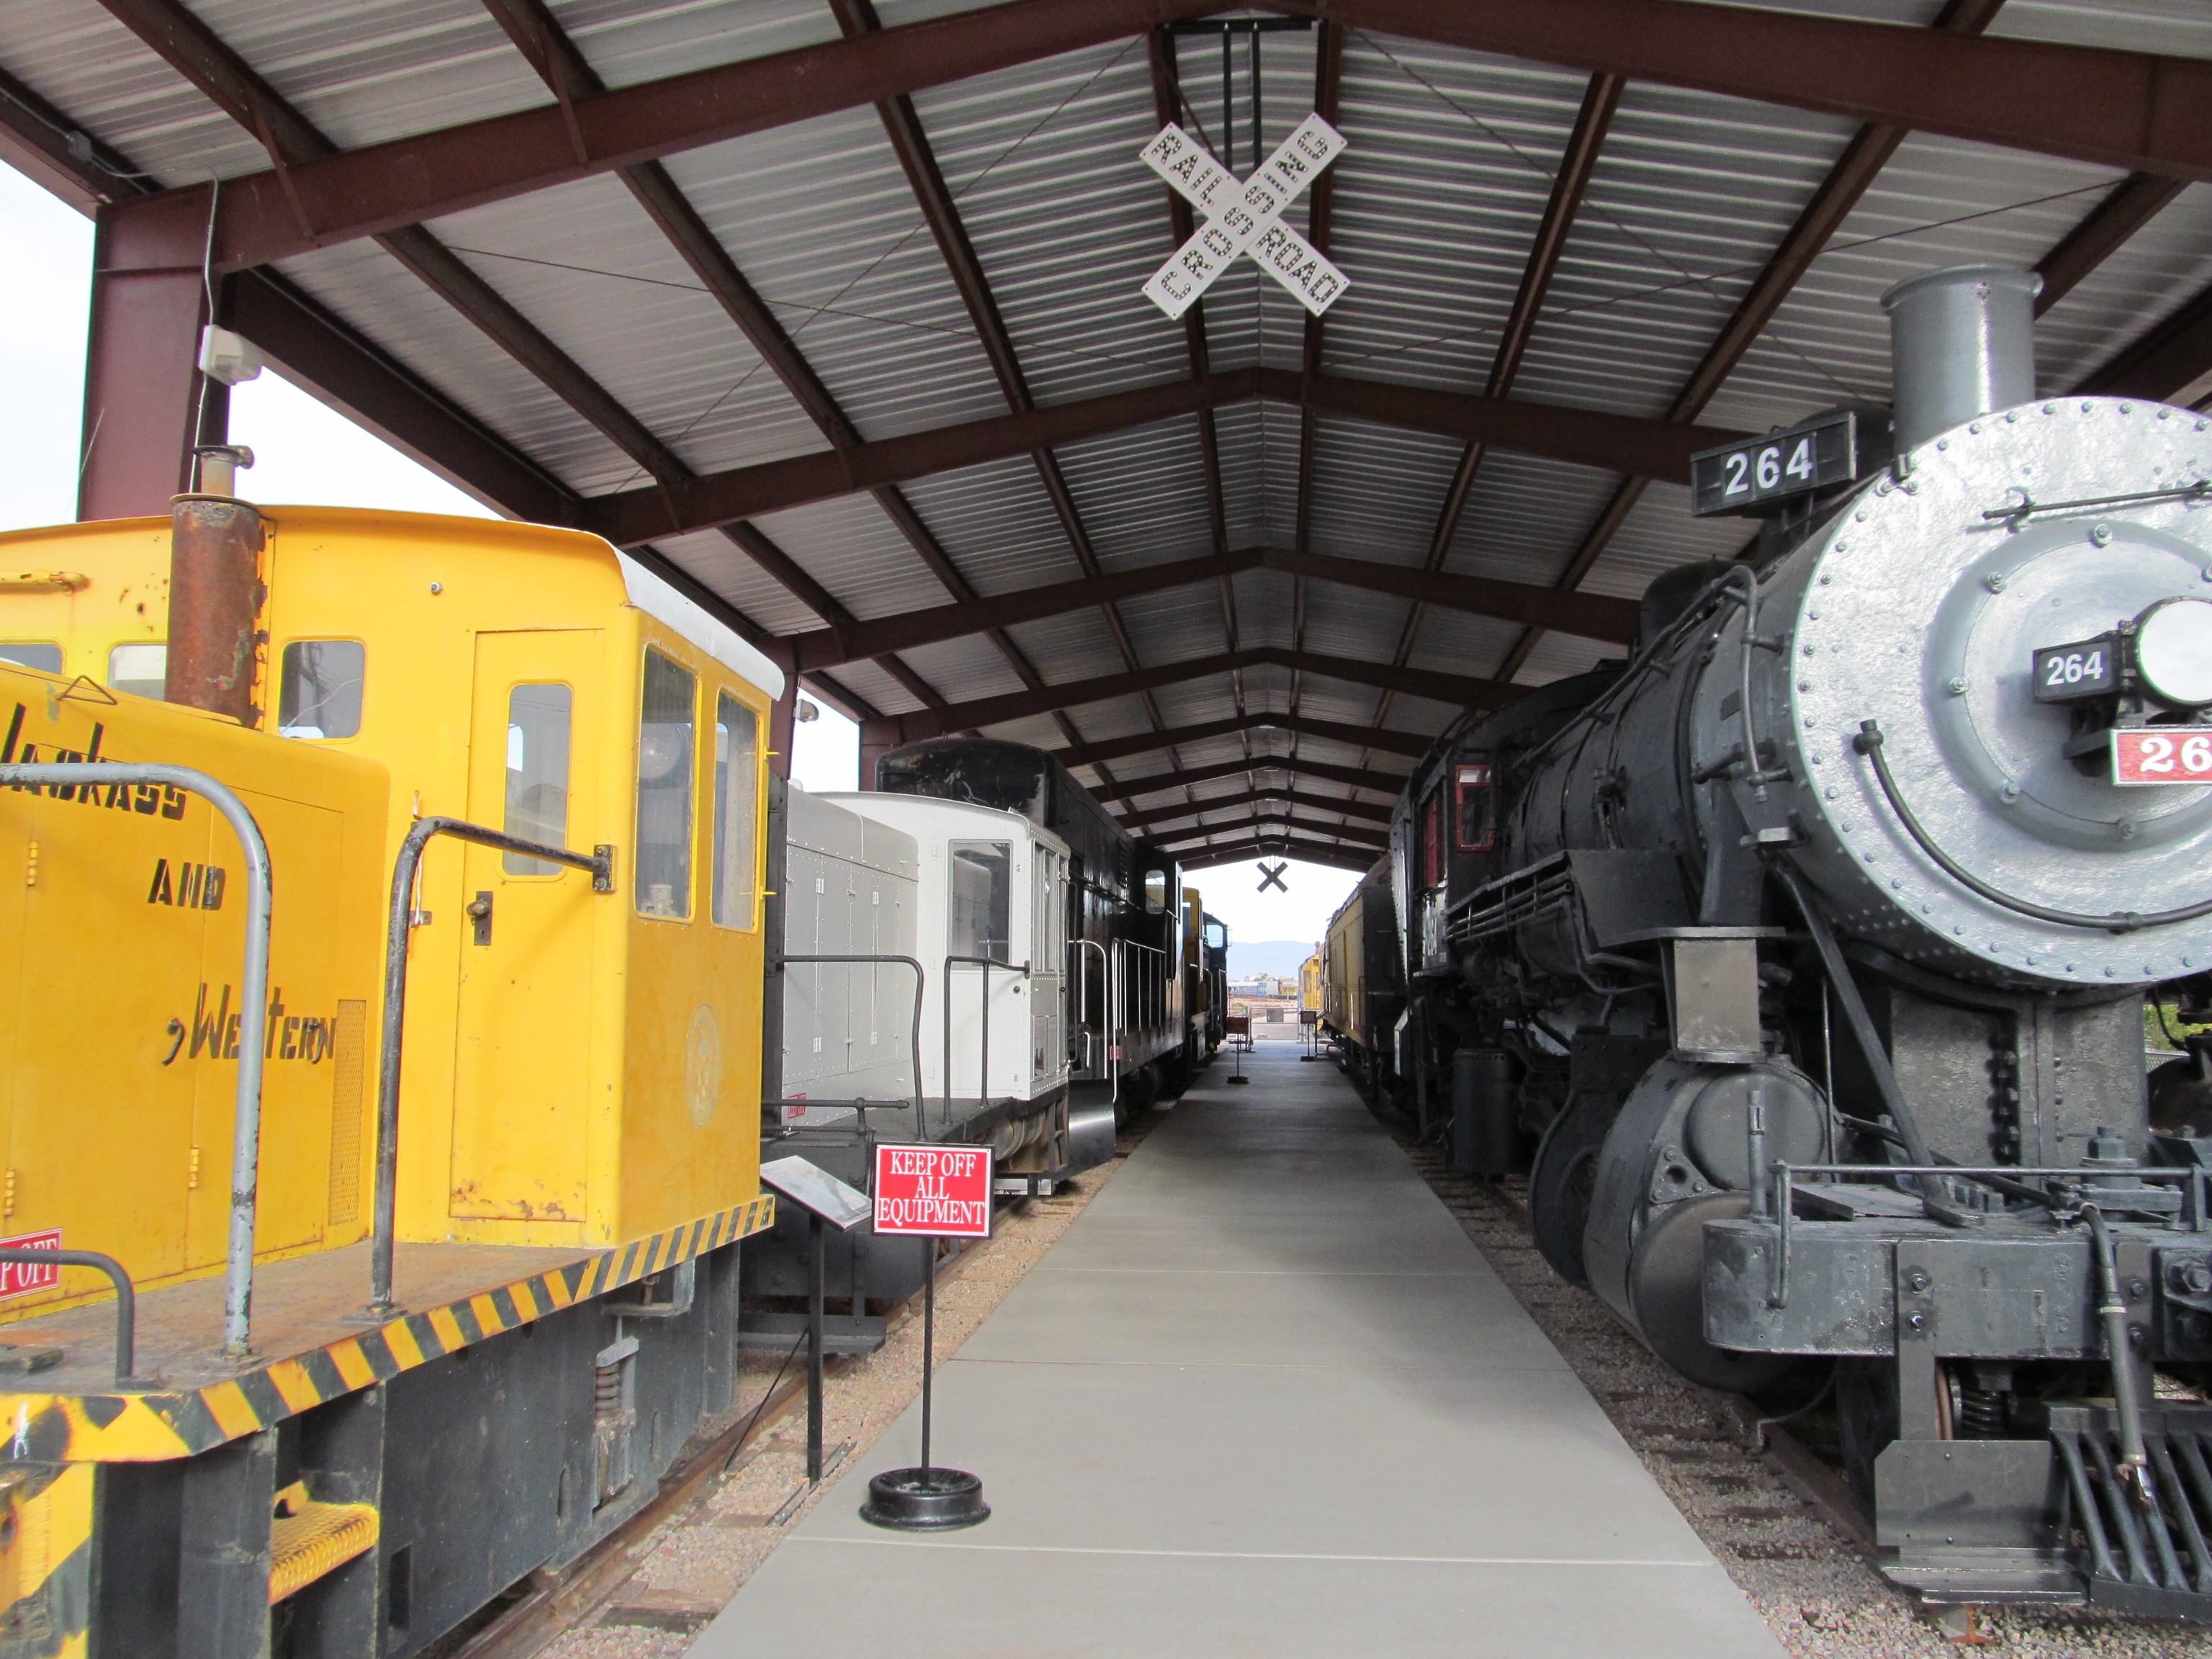 A look at some of the rolling stock on display